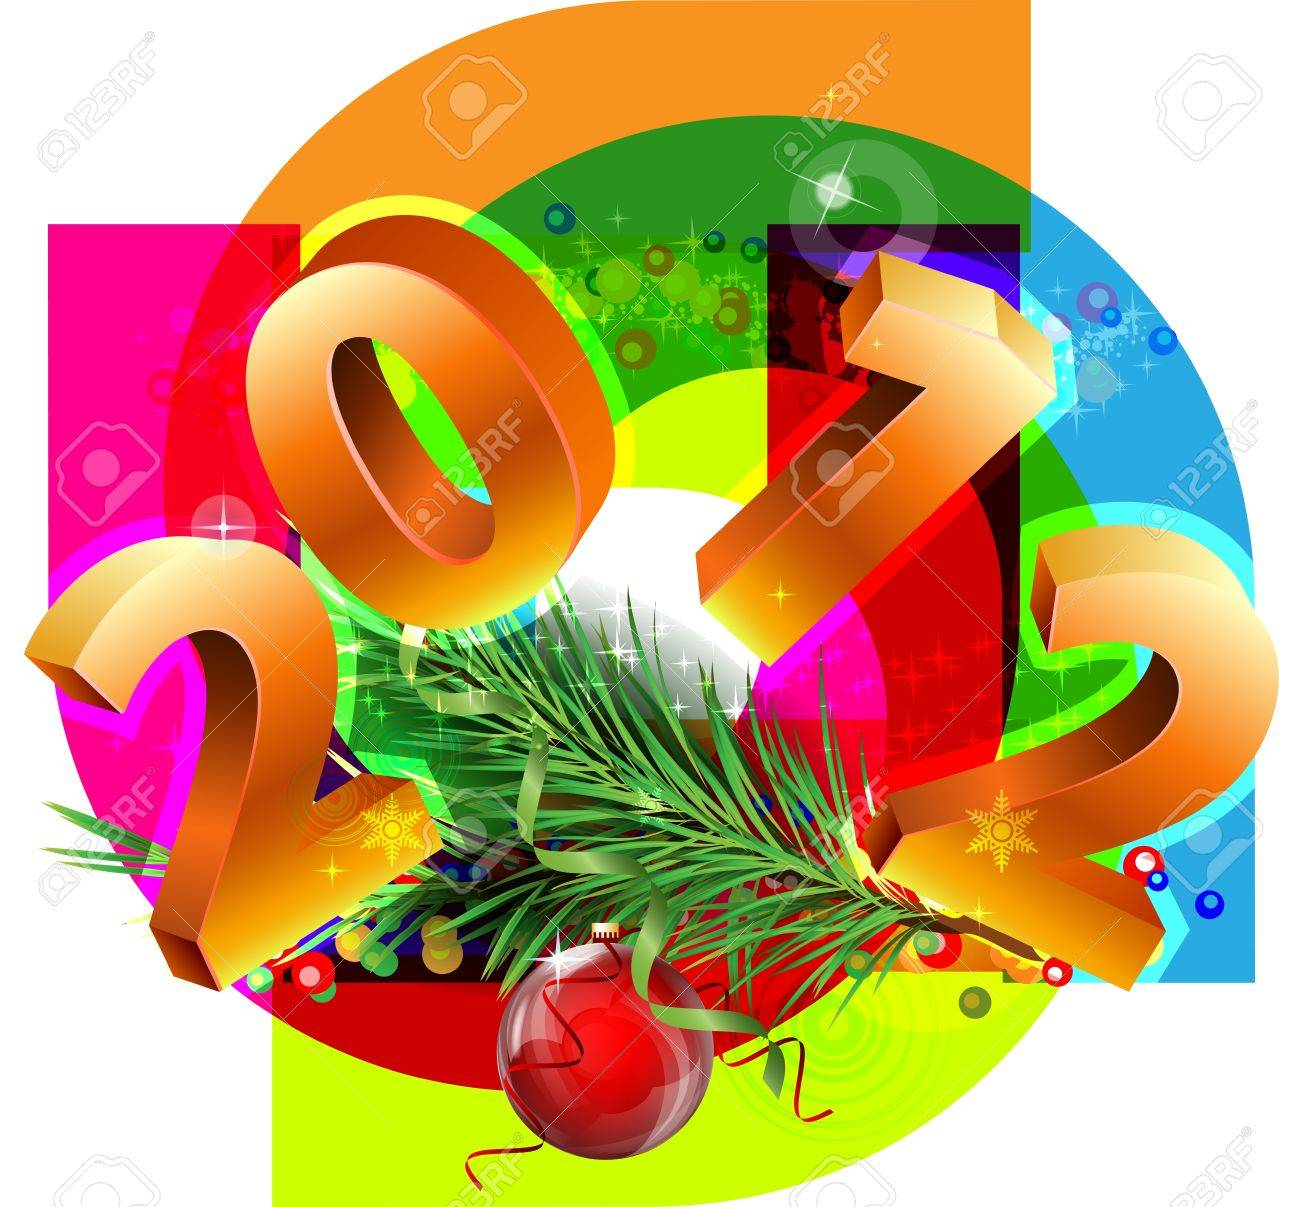 New Year decorative picture with the numbers 2012 Stock Vector - 11453991